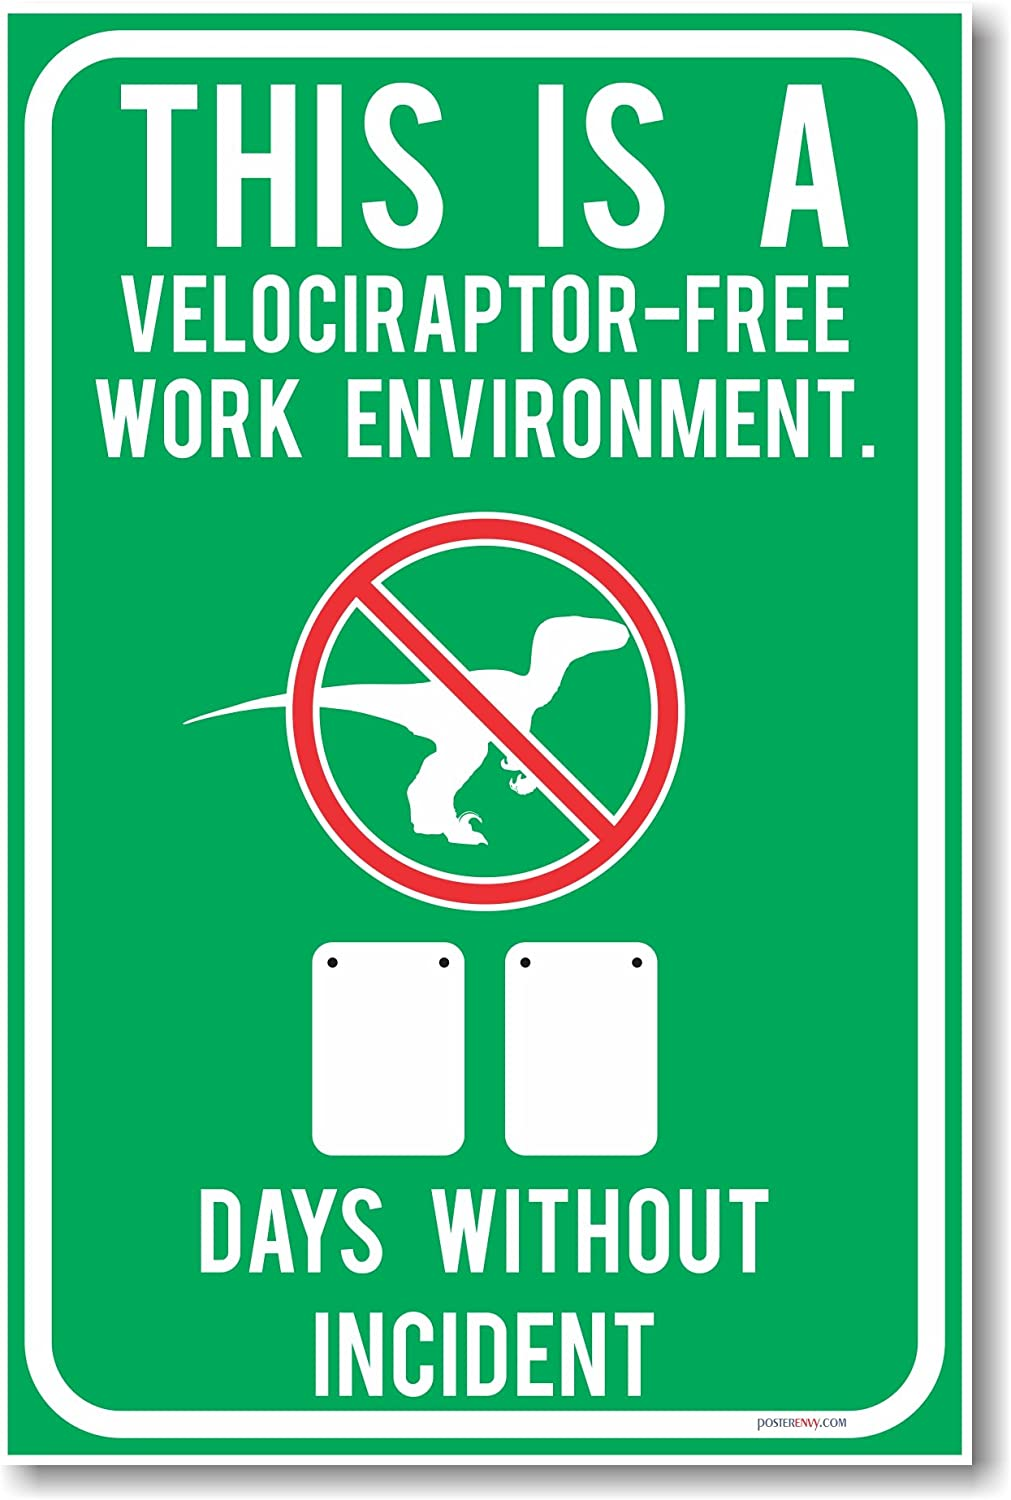 NEW Humor Poster PosterEnvy hu162 This is a Velociraptor Free Work Environment 2